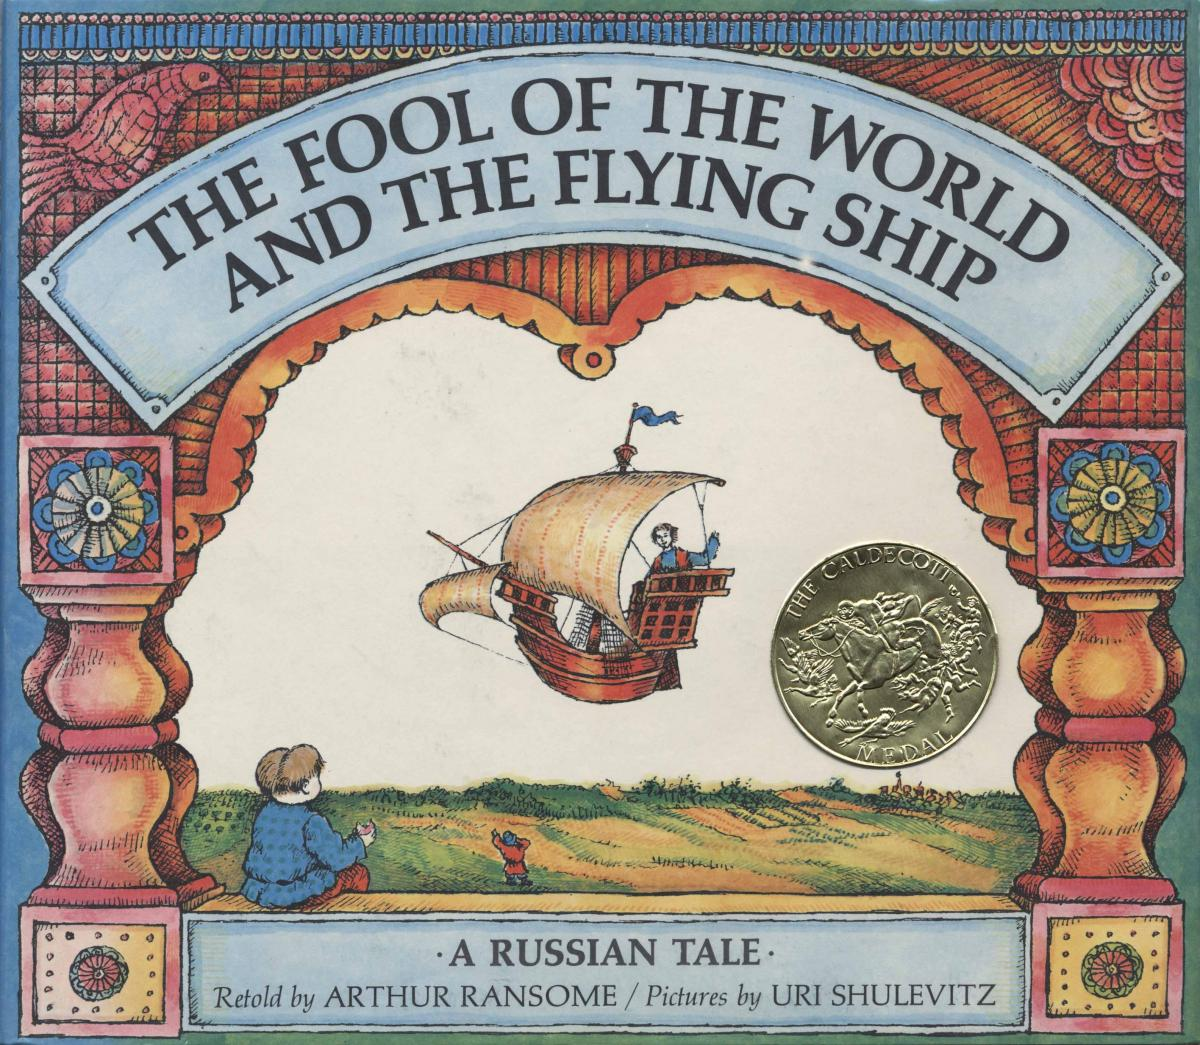 The Fool of the World and the Flying Ship - book cover image